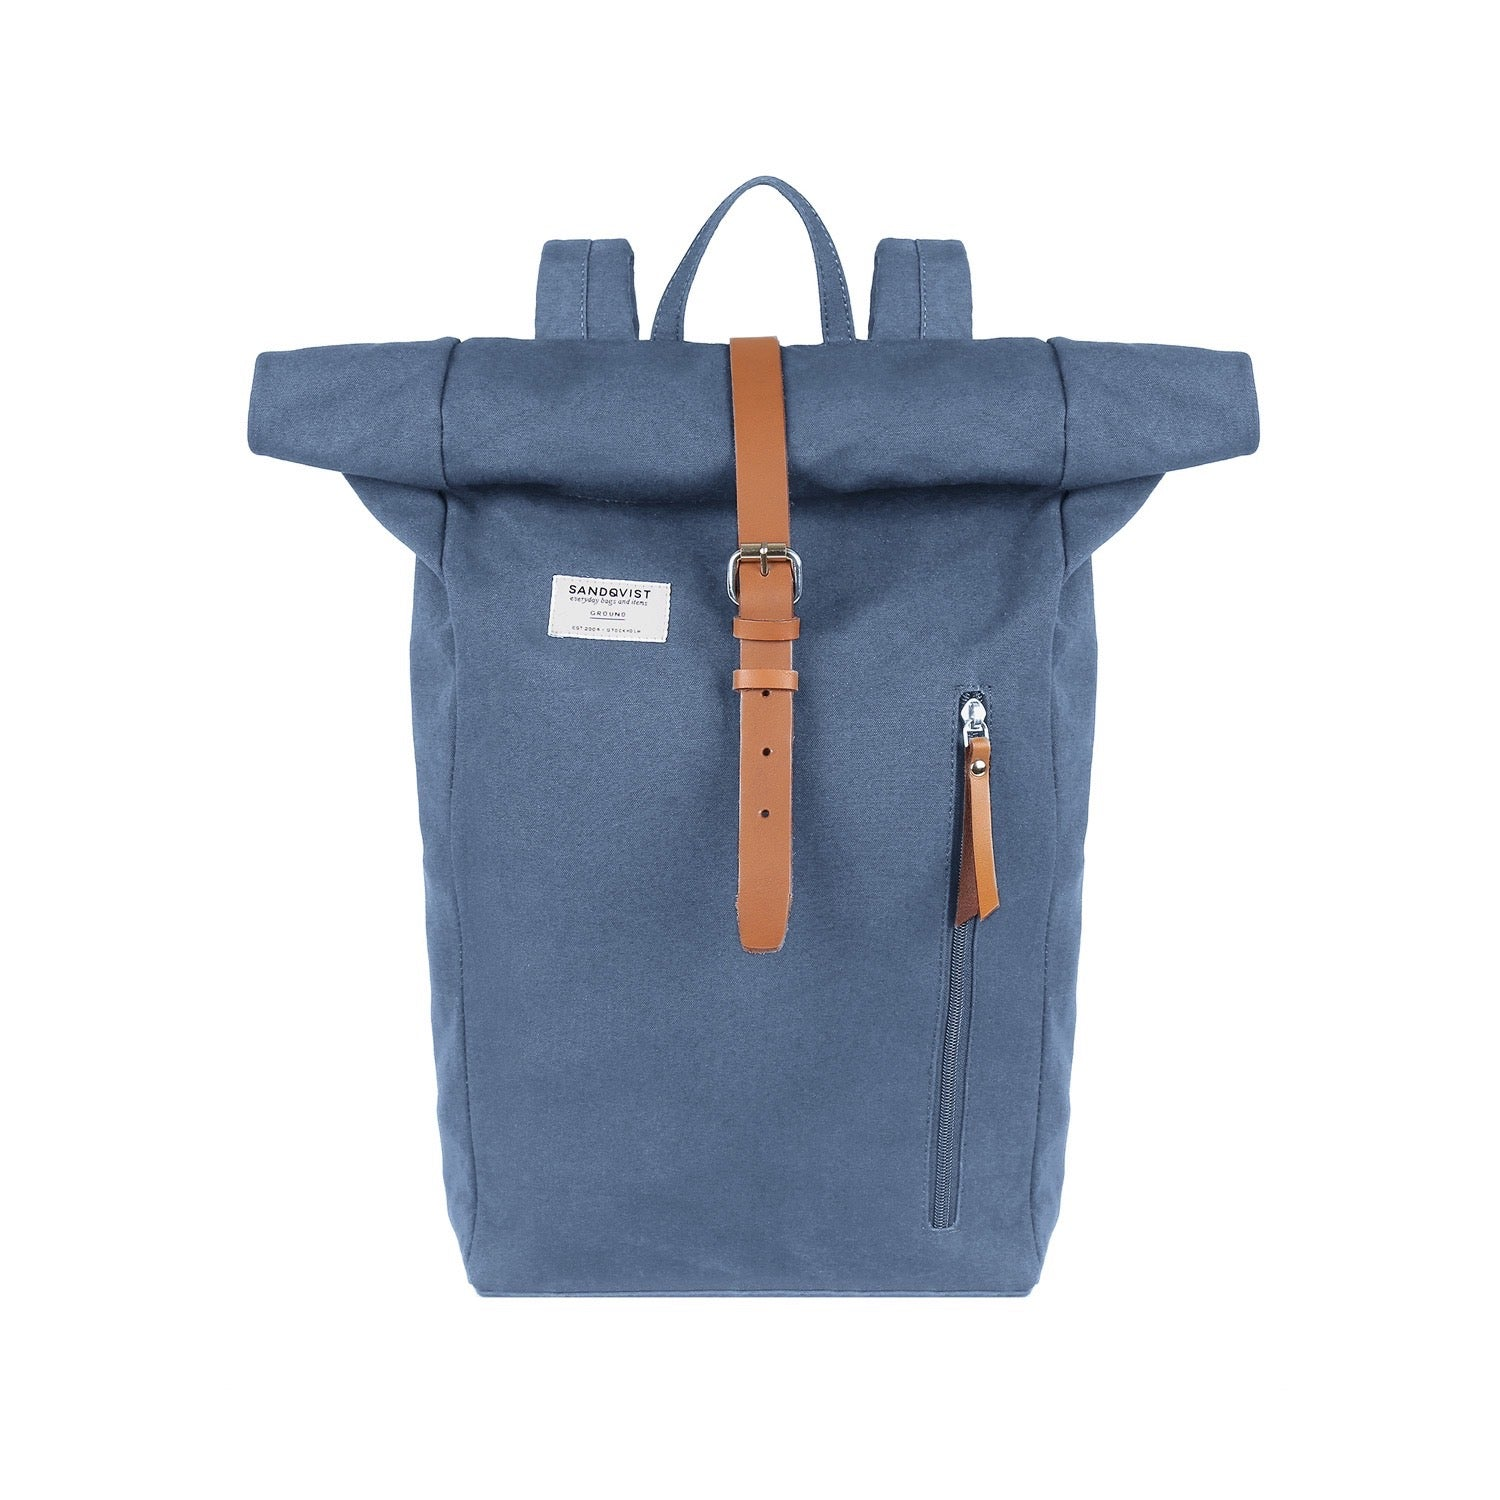 Sandqvist Dante Backpack (Dusty Blue)-1